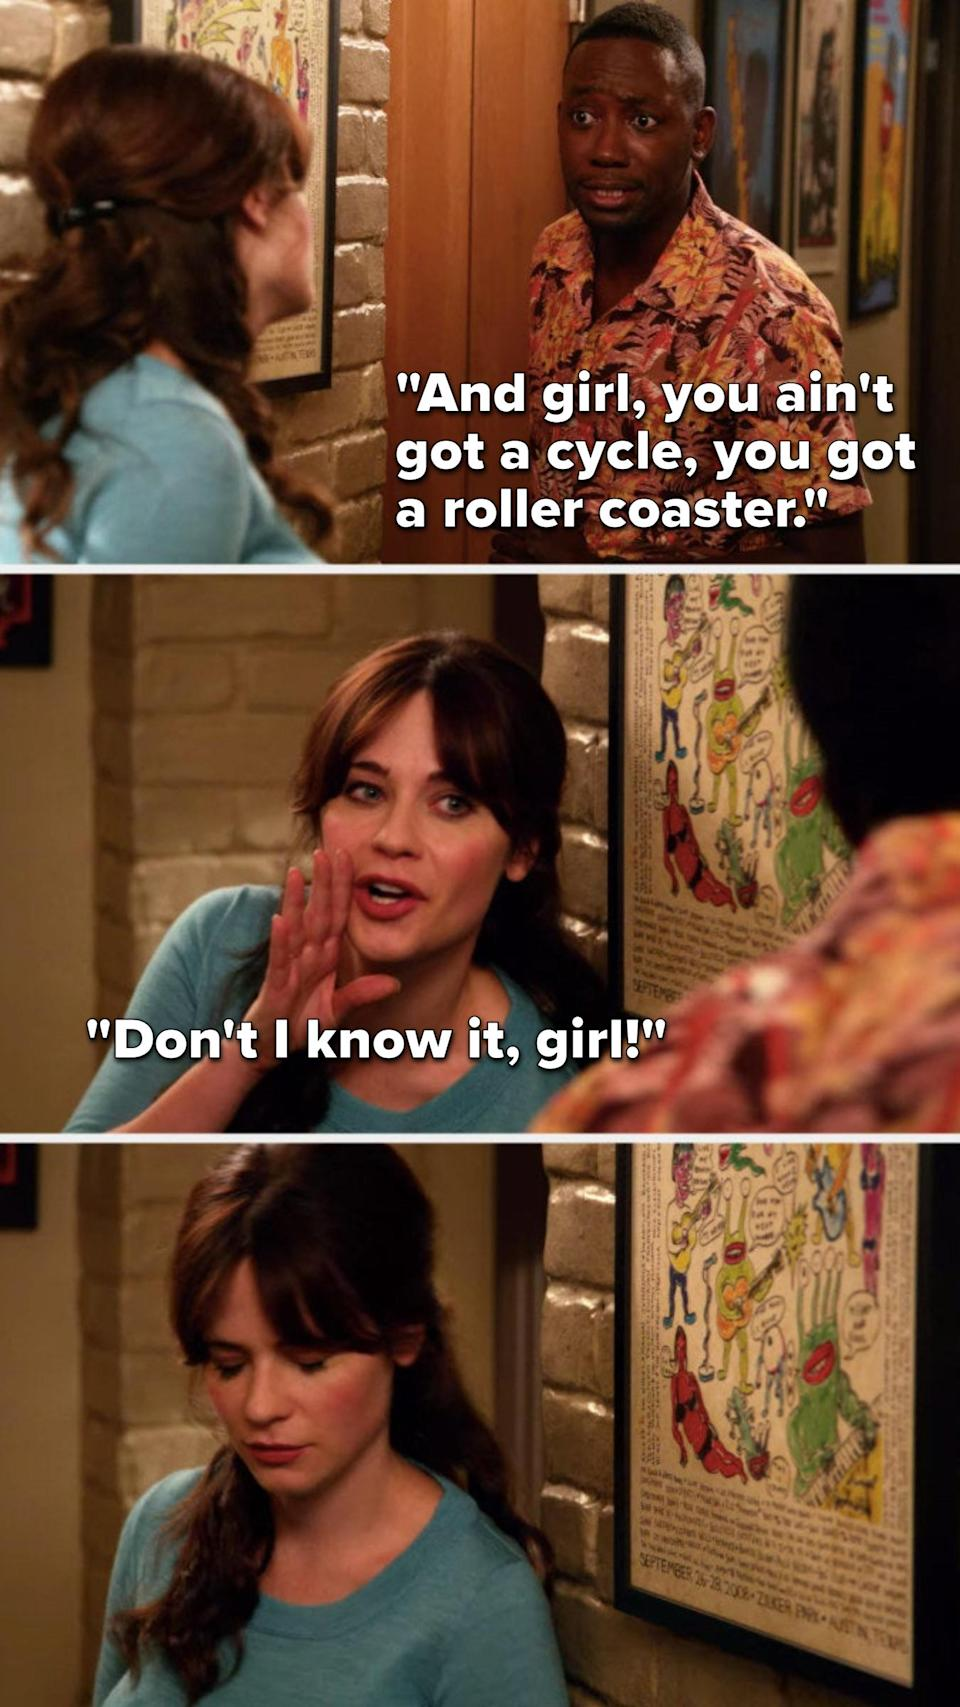 Winston says, And girl, you ain't got a cycle, you got a rollercoaster, Jess says, Don't I know it, girl and then looks down in shame